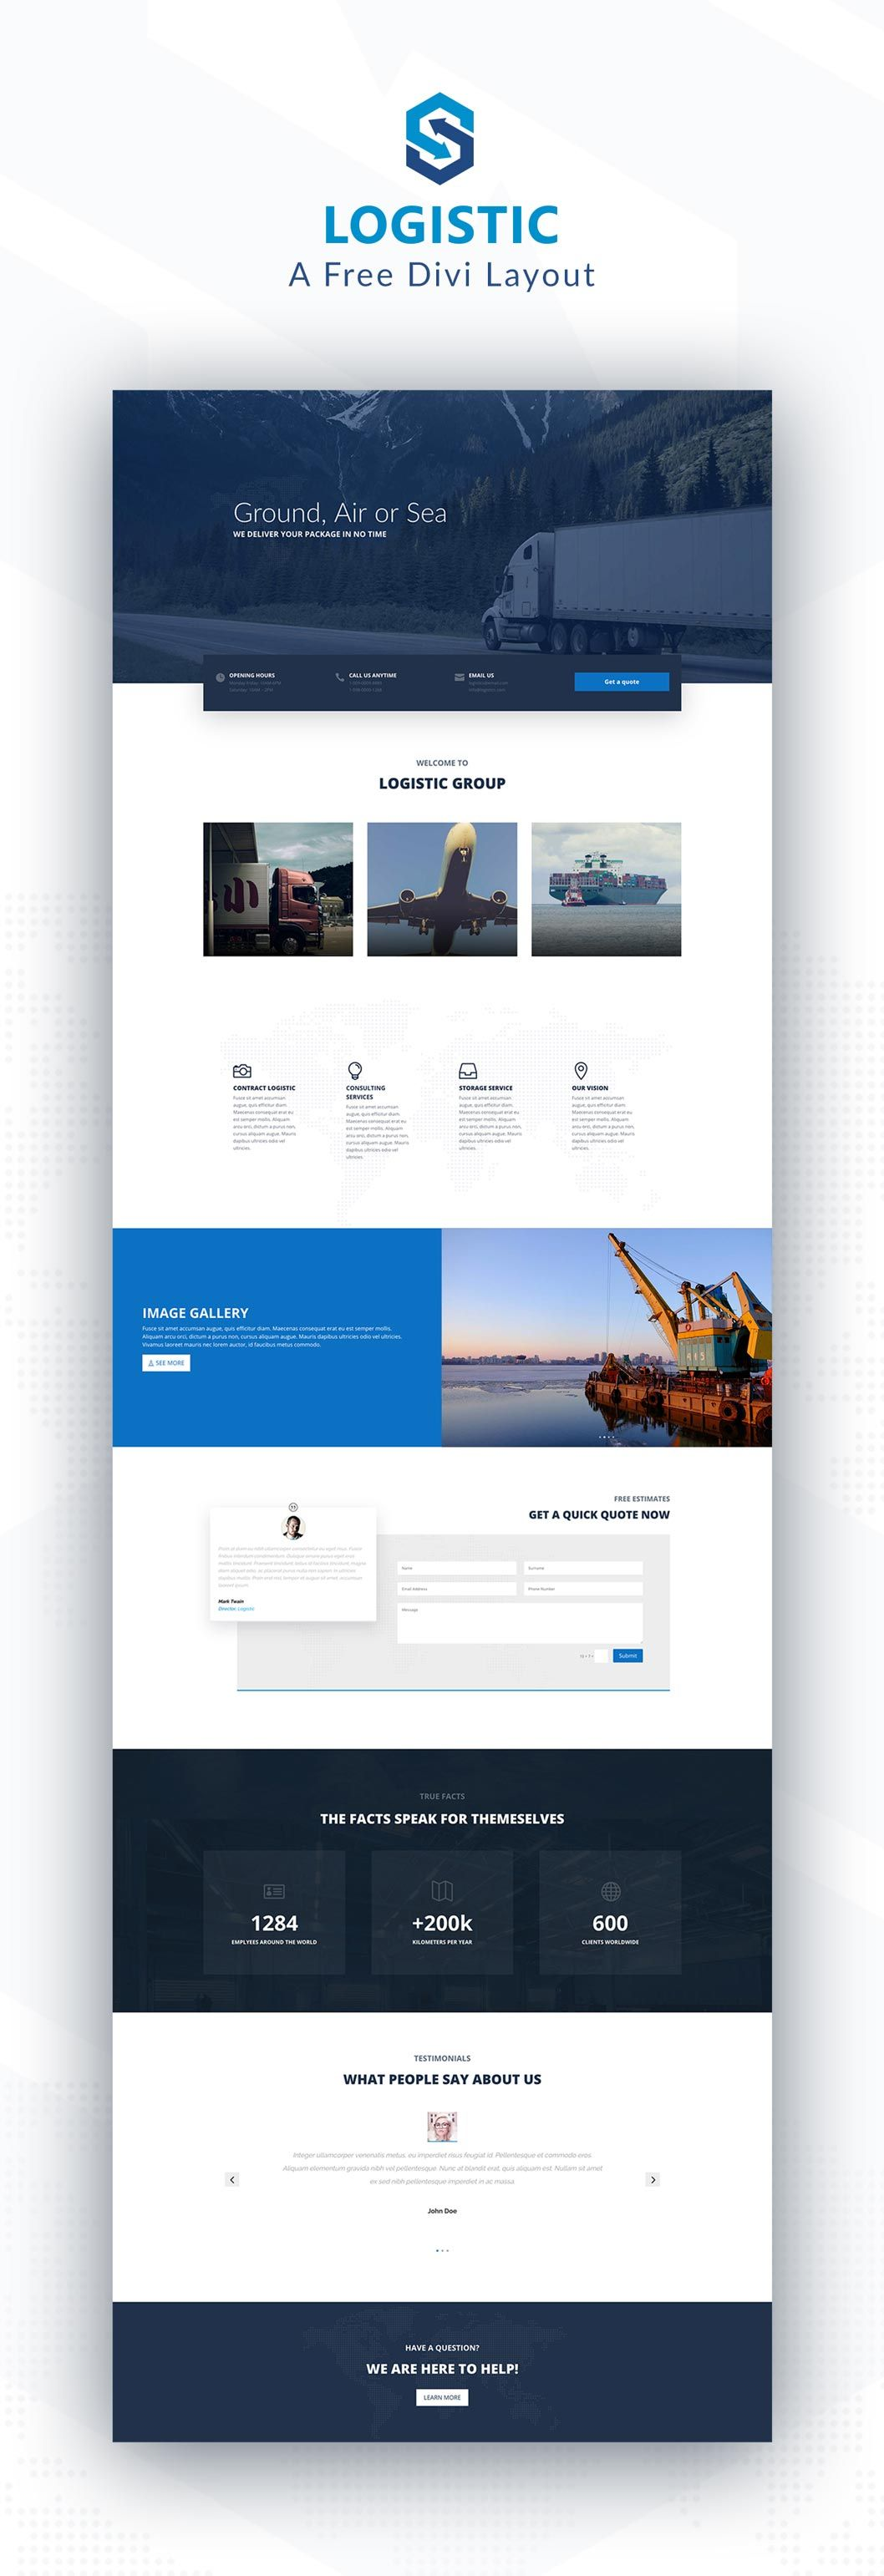 Logistic – A Simple Home Page Layout for Divi